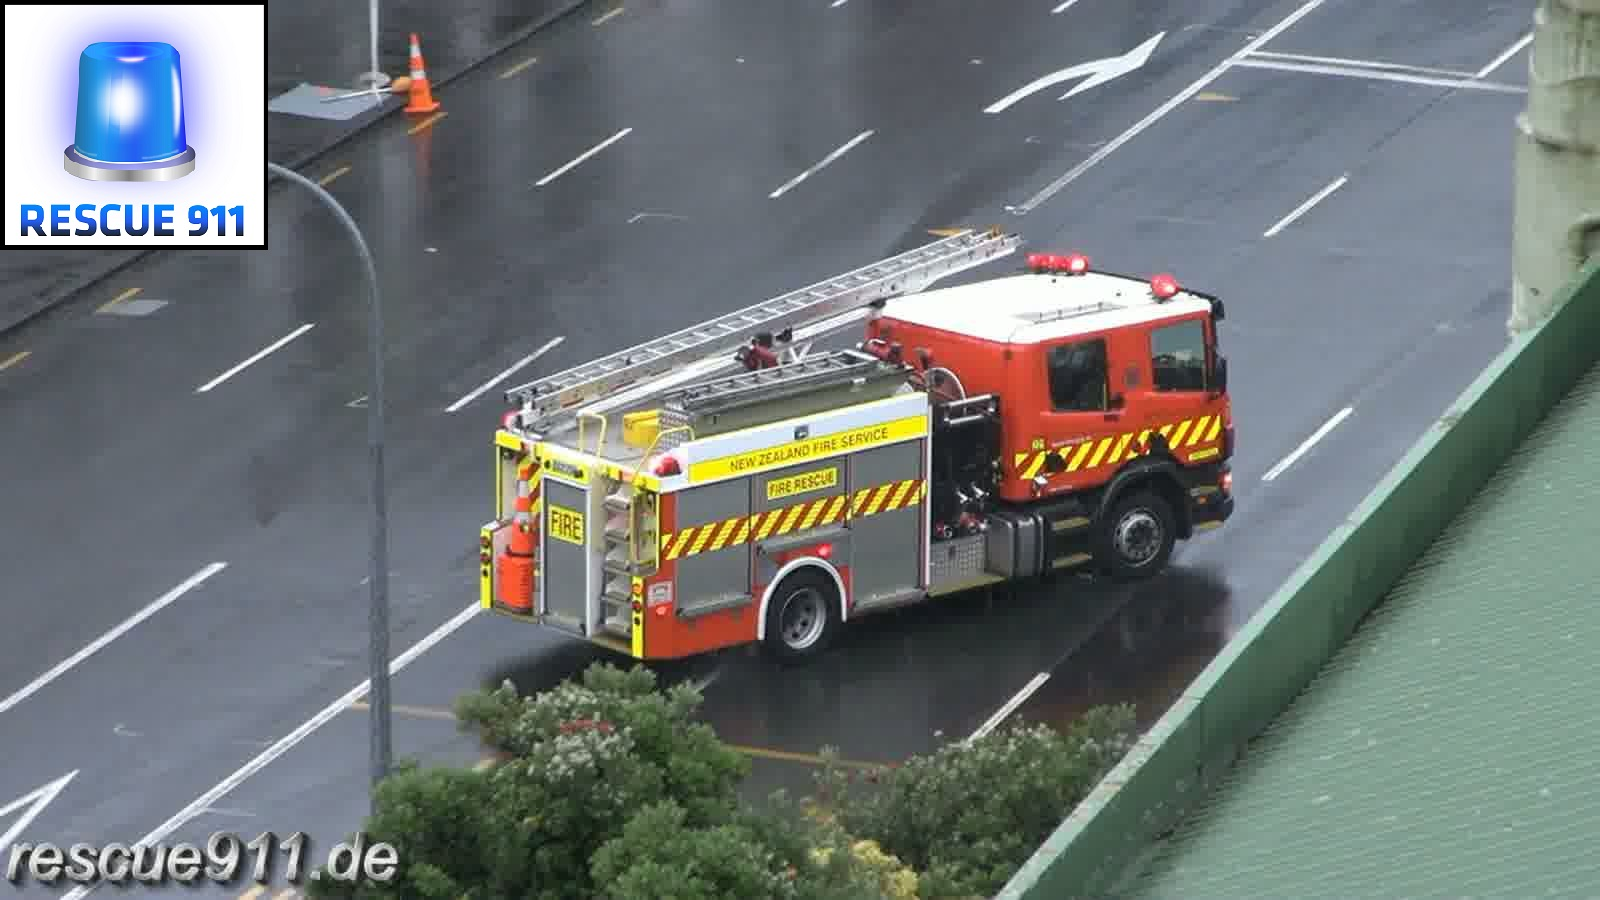 New Zealand Fire Service (collection) (stream)